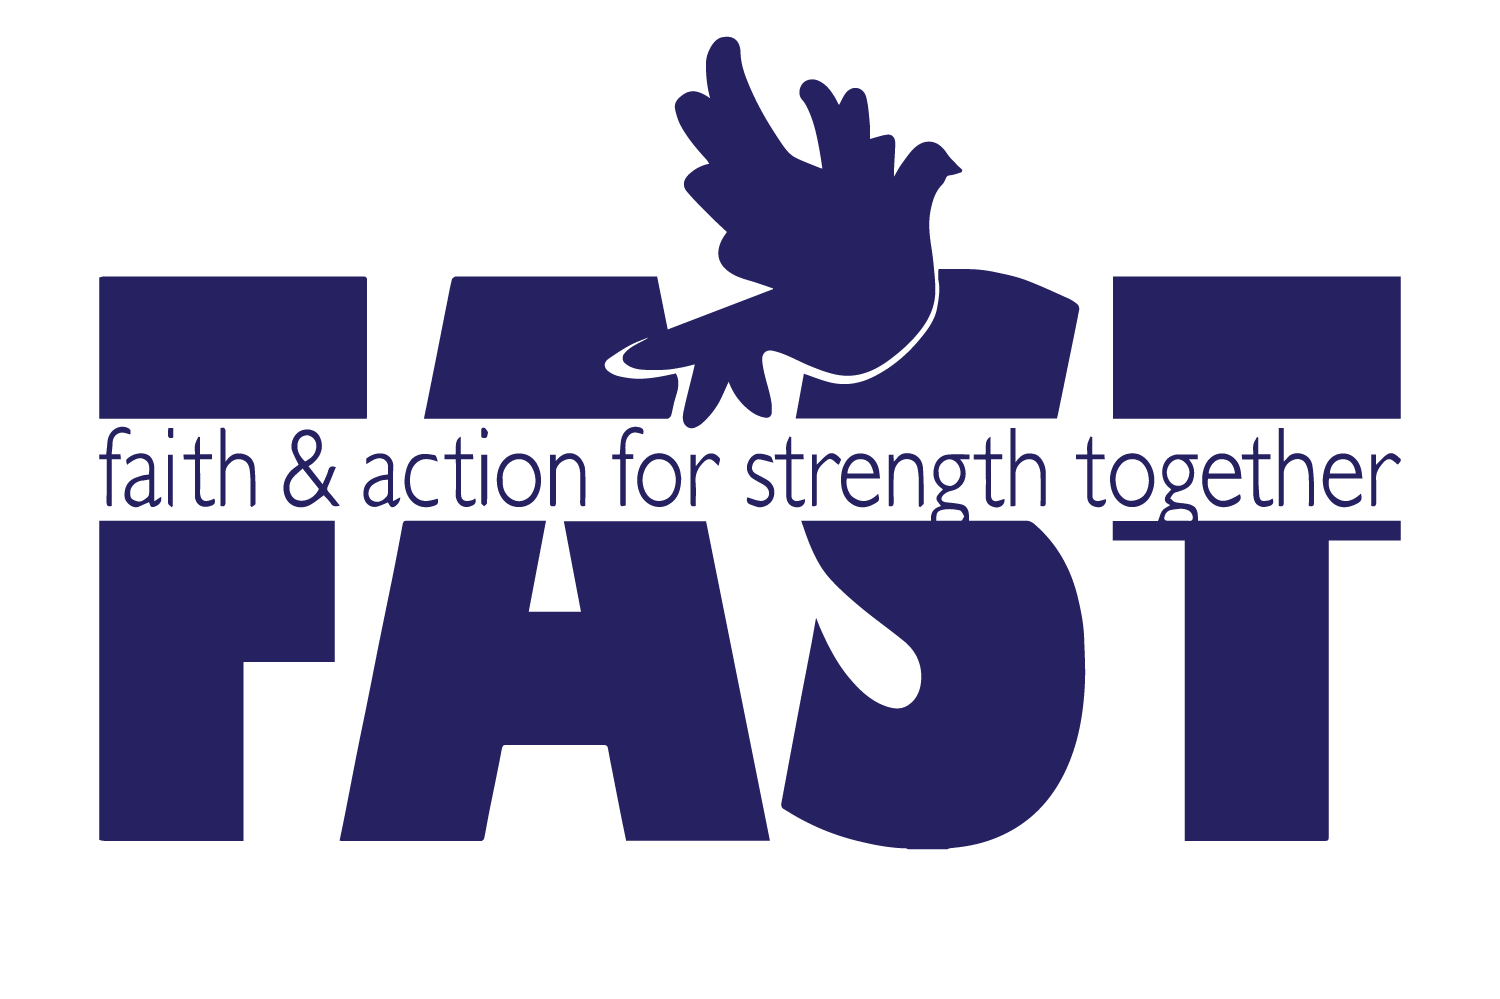 Faith and Action for Strength Together